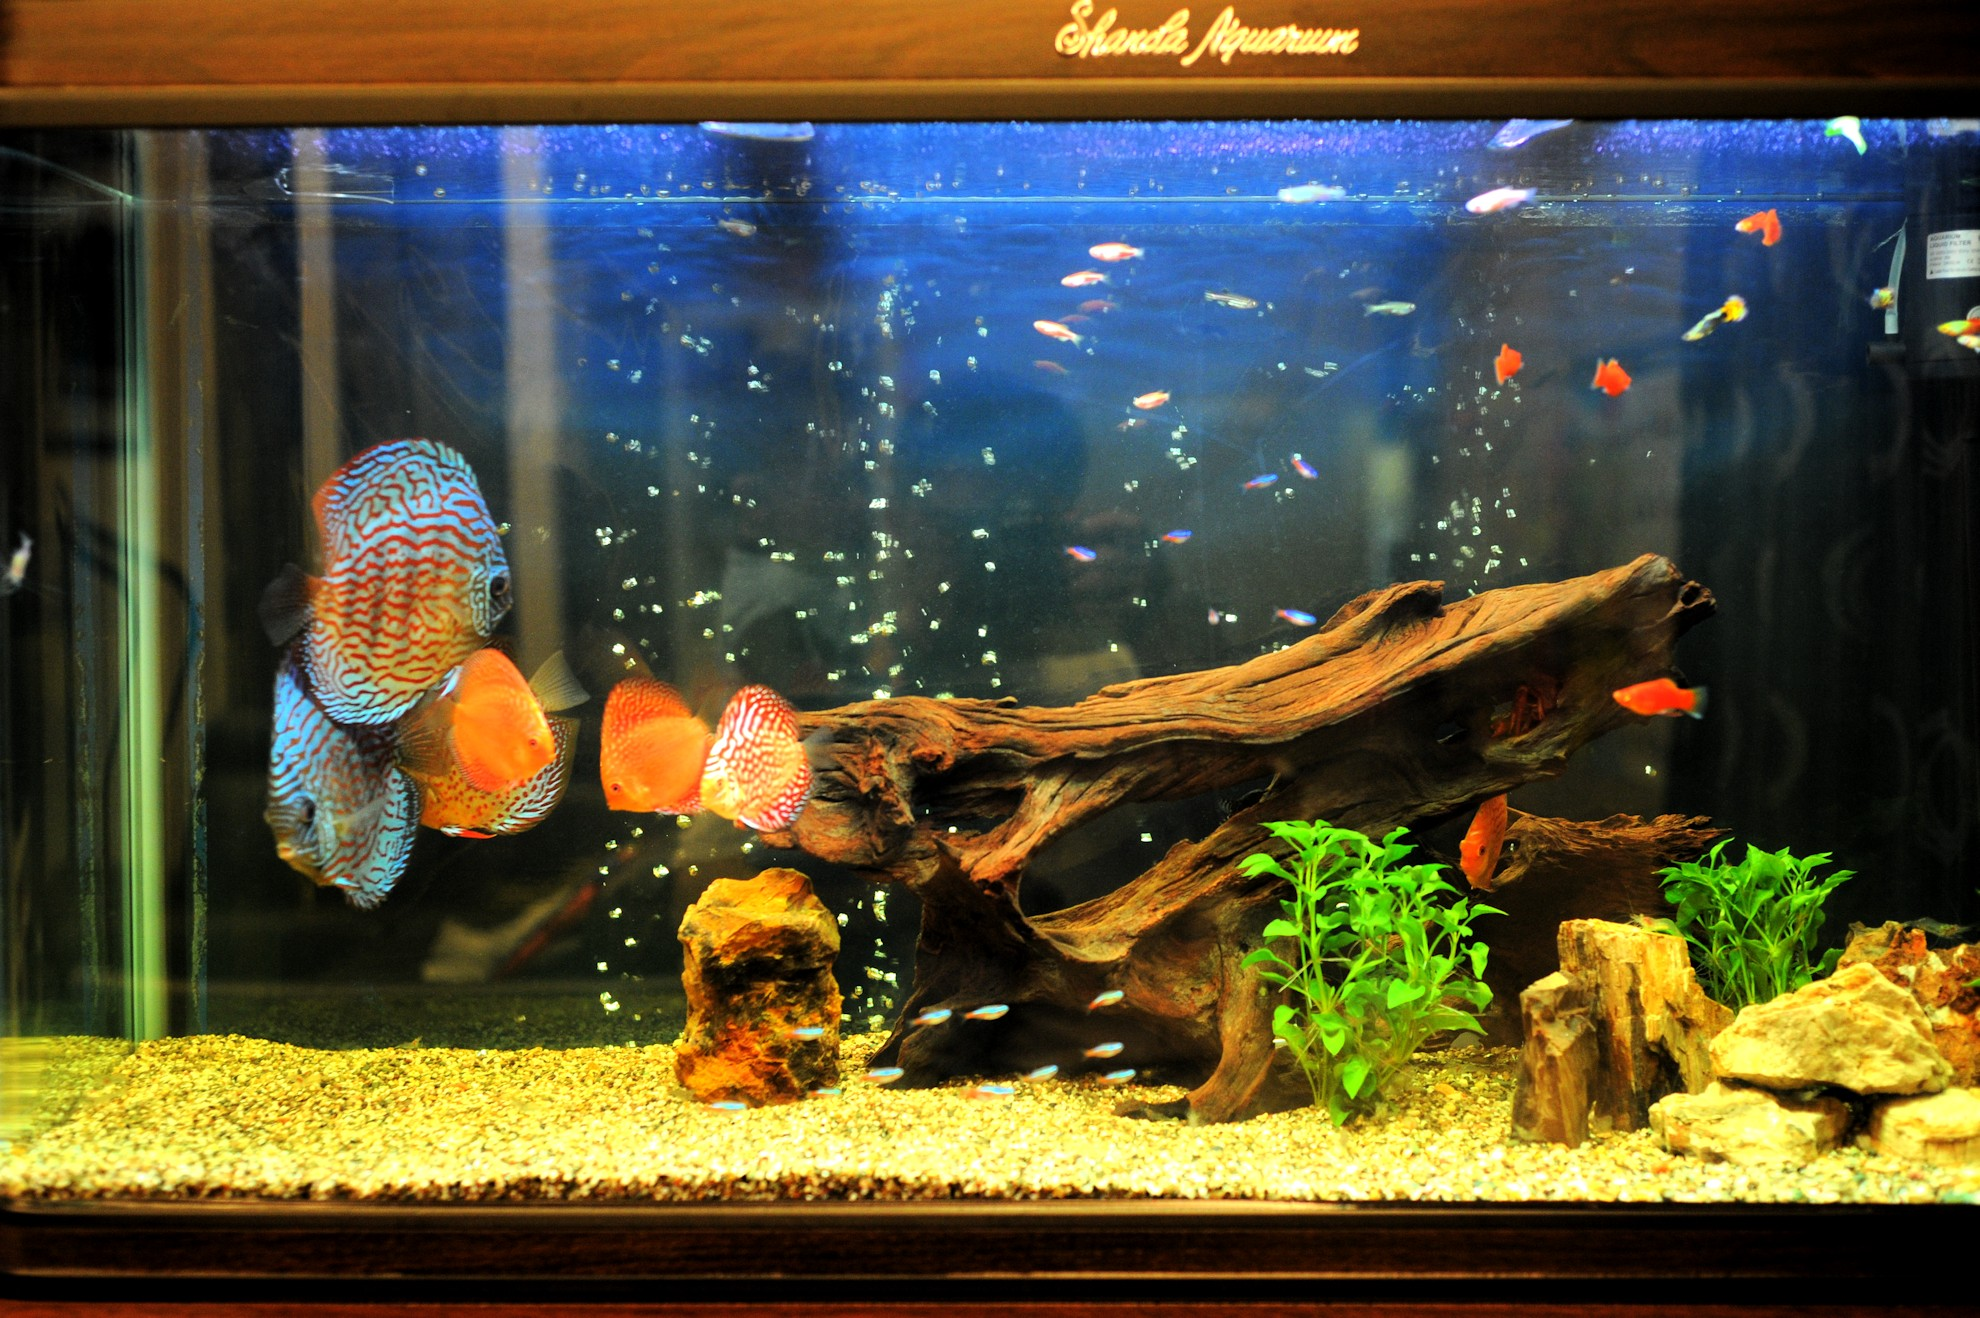 Fish aquarium red spots - My Wife Said The The Blue One Seems To Be Too Huge For My Tank I Have To Agree Initially I Want Only Red Spots Discus